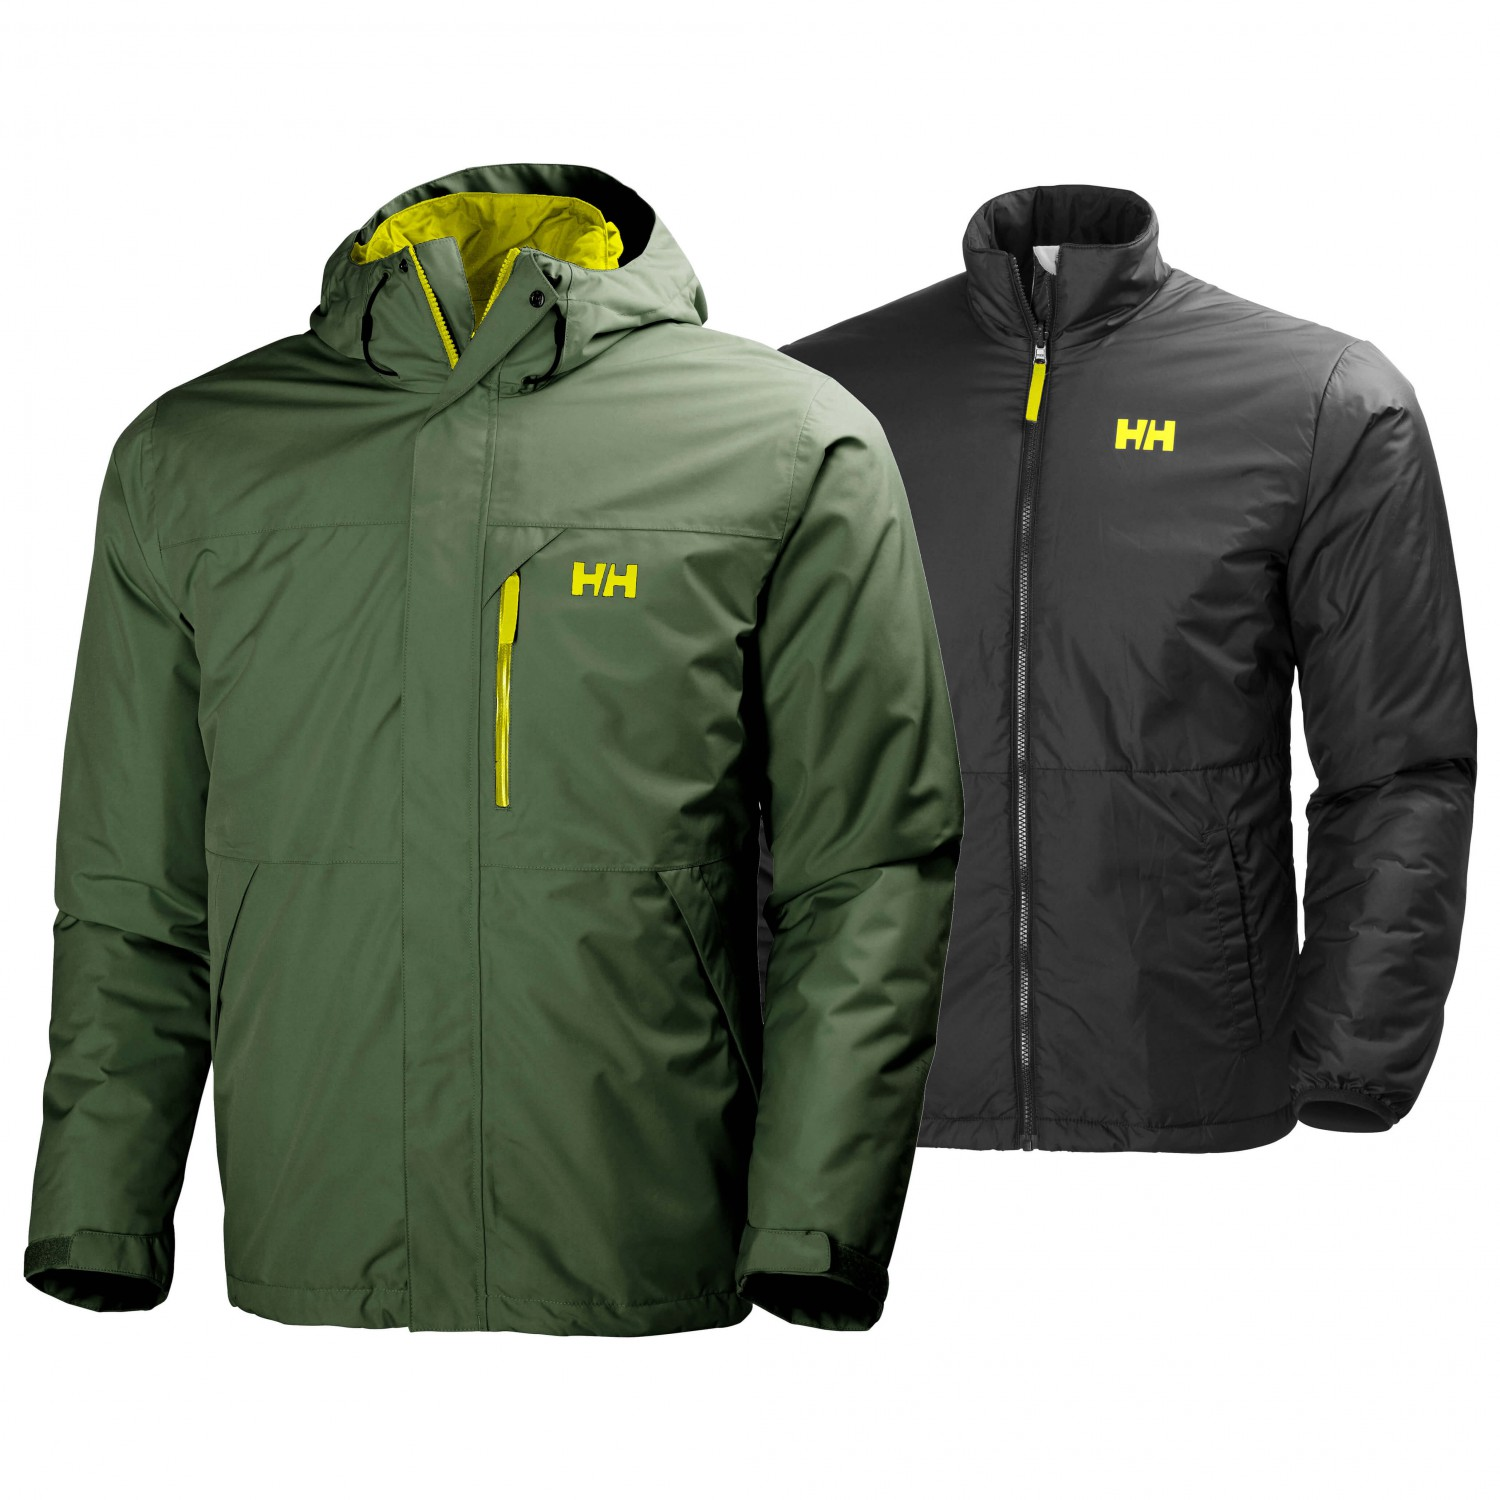 Helly Hansen Squamish CIS Jacket 3 i 1 jakke